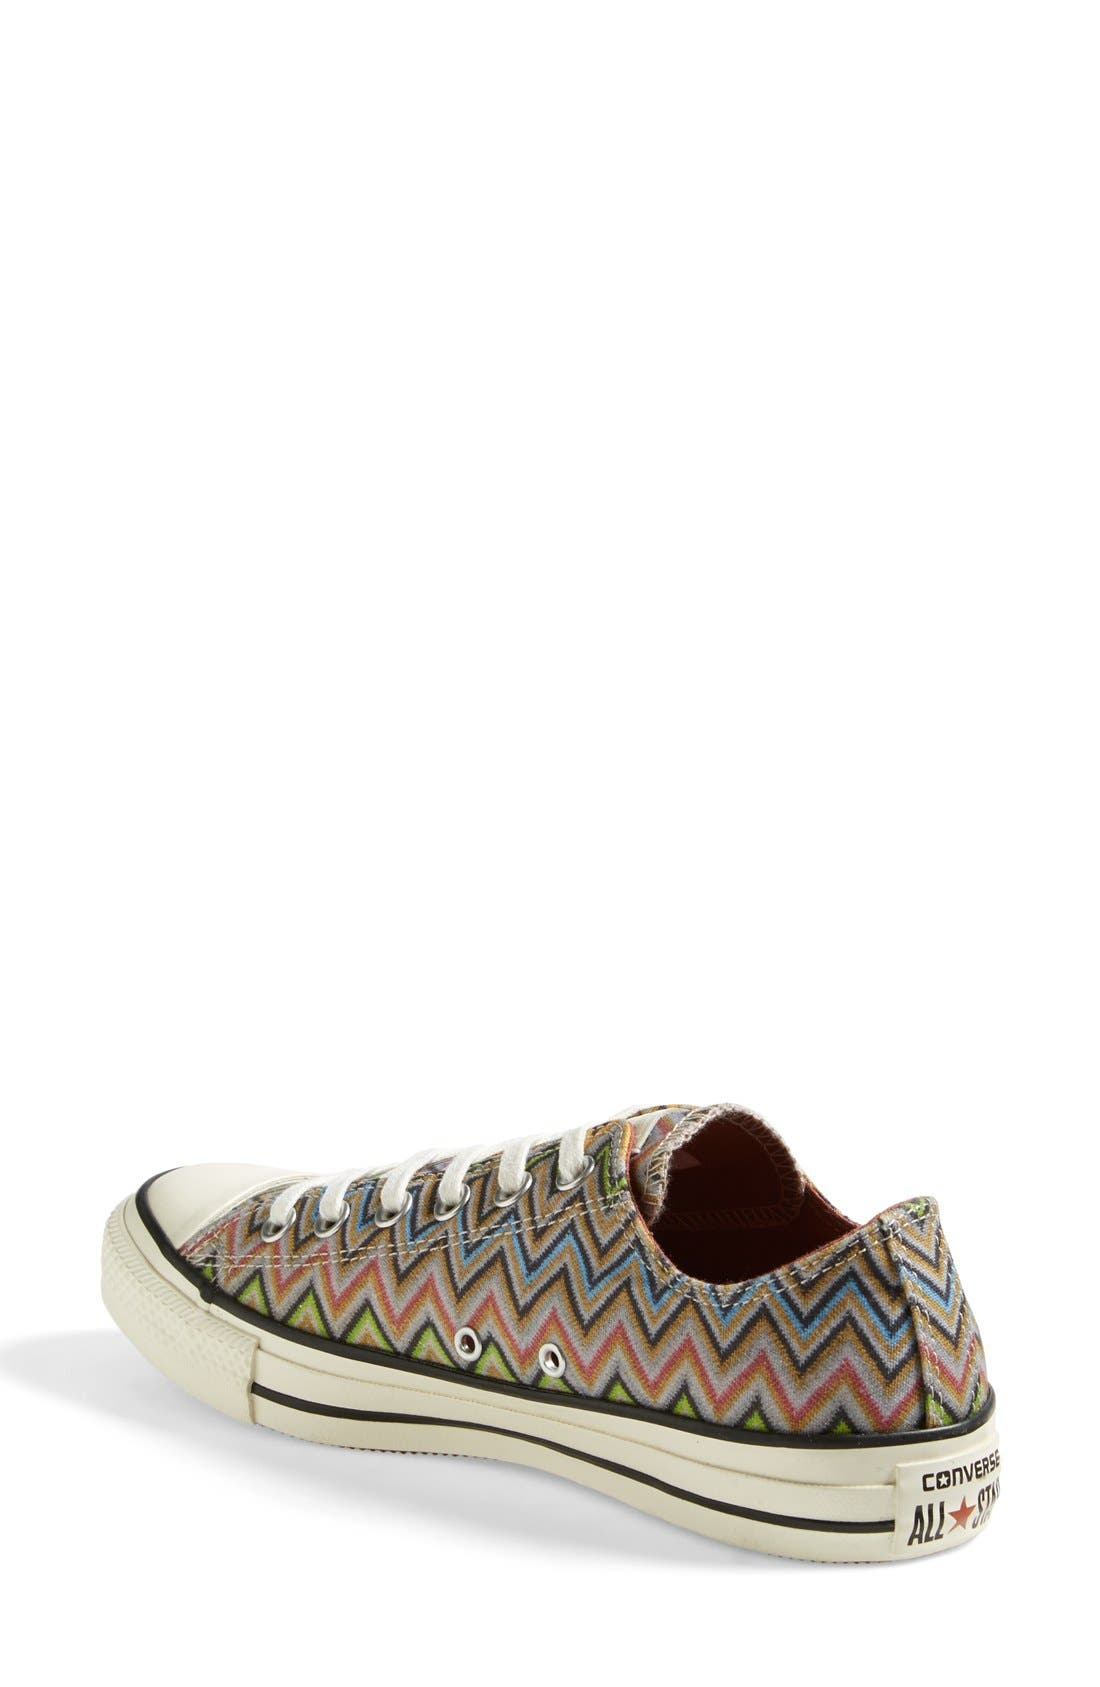 x Missoni Chuck Taylor<sup>®</sup> All Star<sup>®</sup> Low Sneaker,                             Alternate thumbnail 2, color,                             Lucky Stone/ Egret